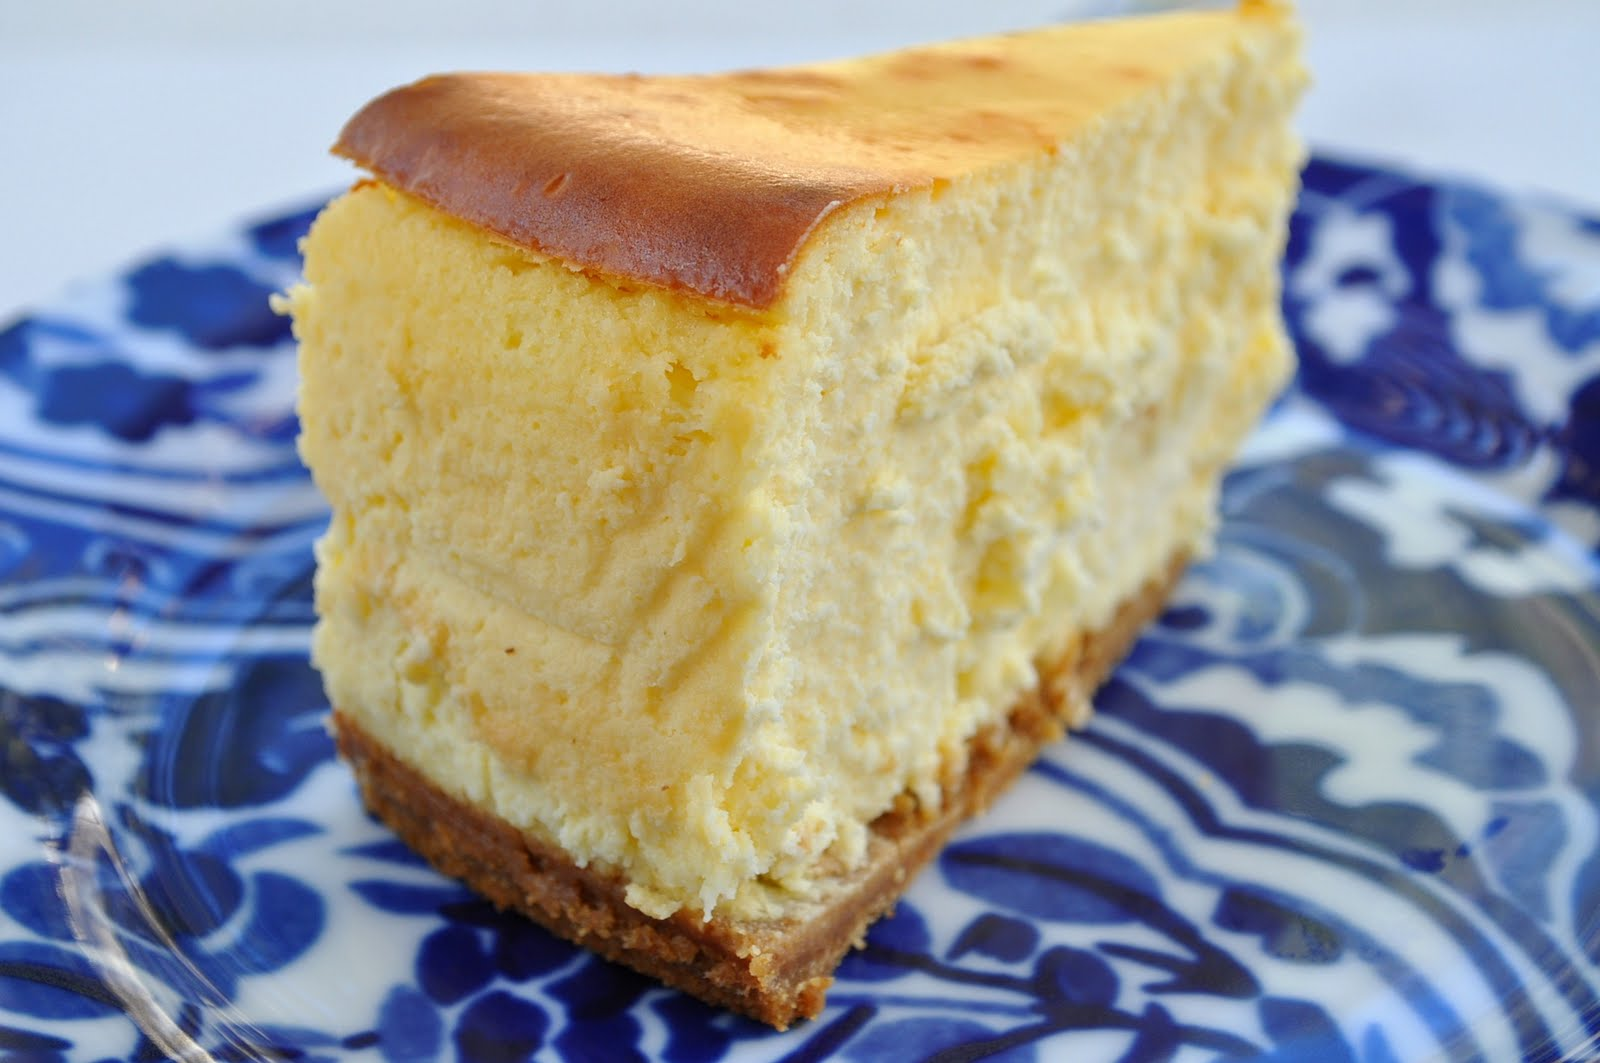 New York cheesecake is sweet,